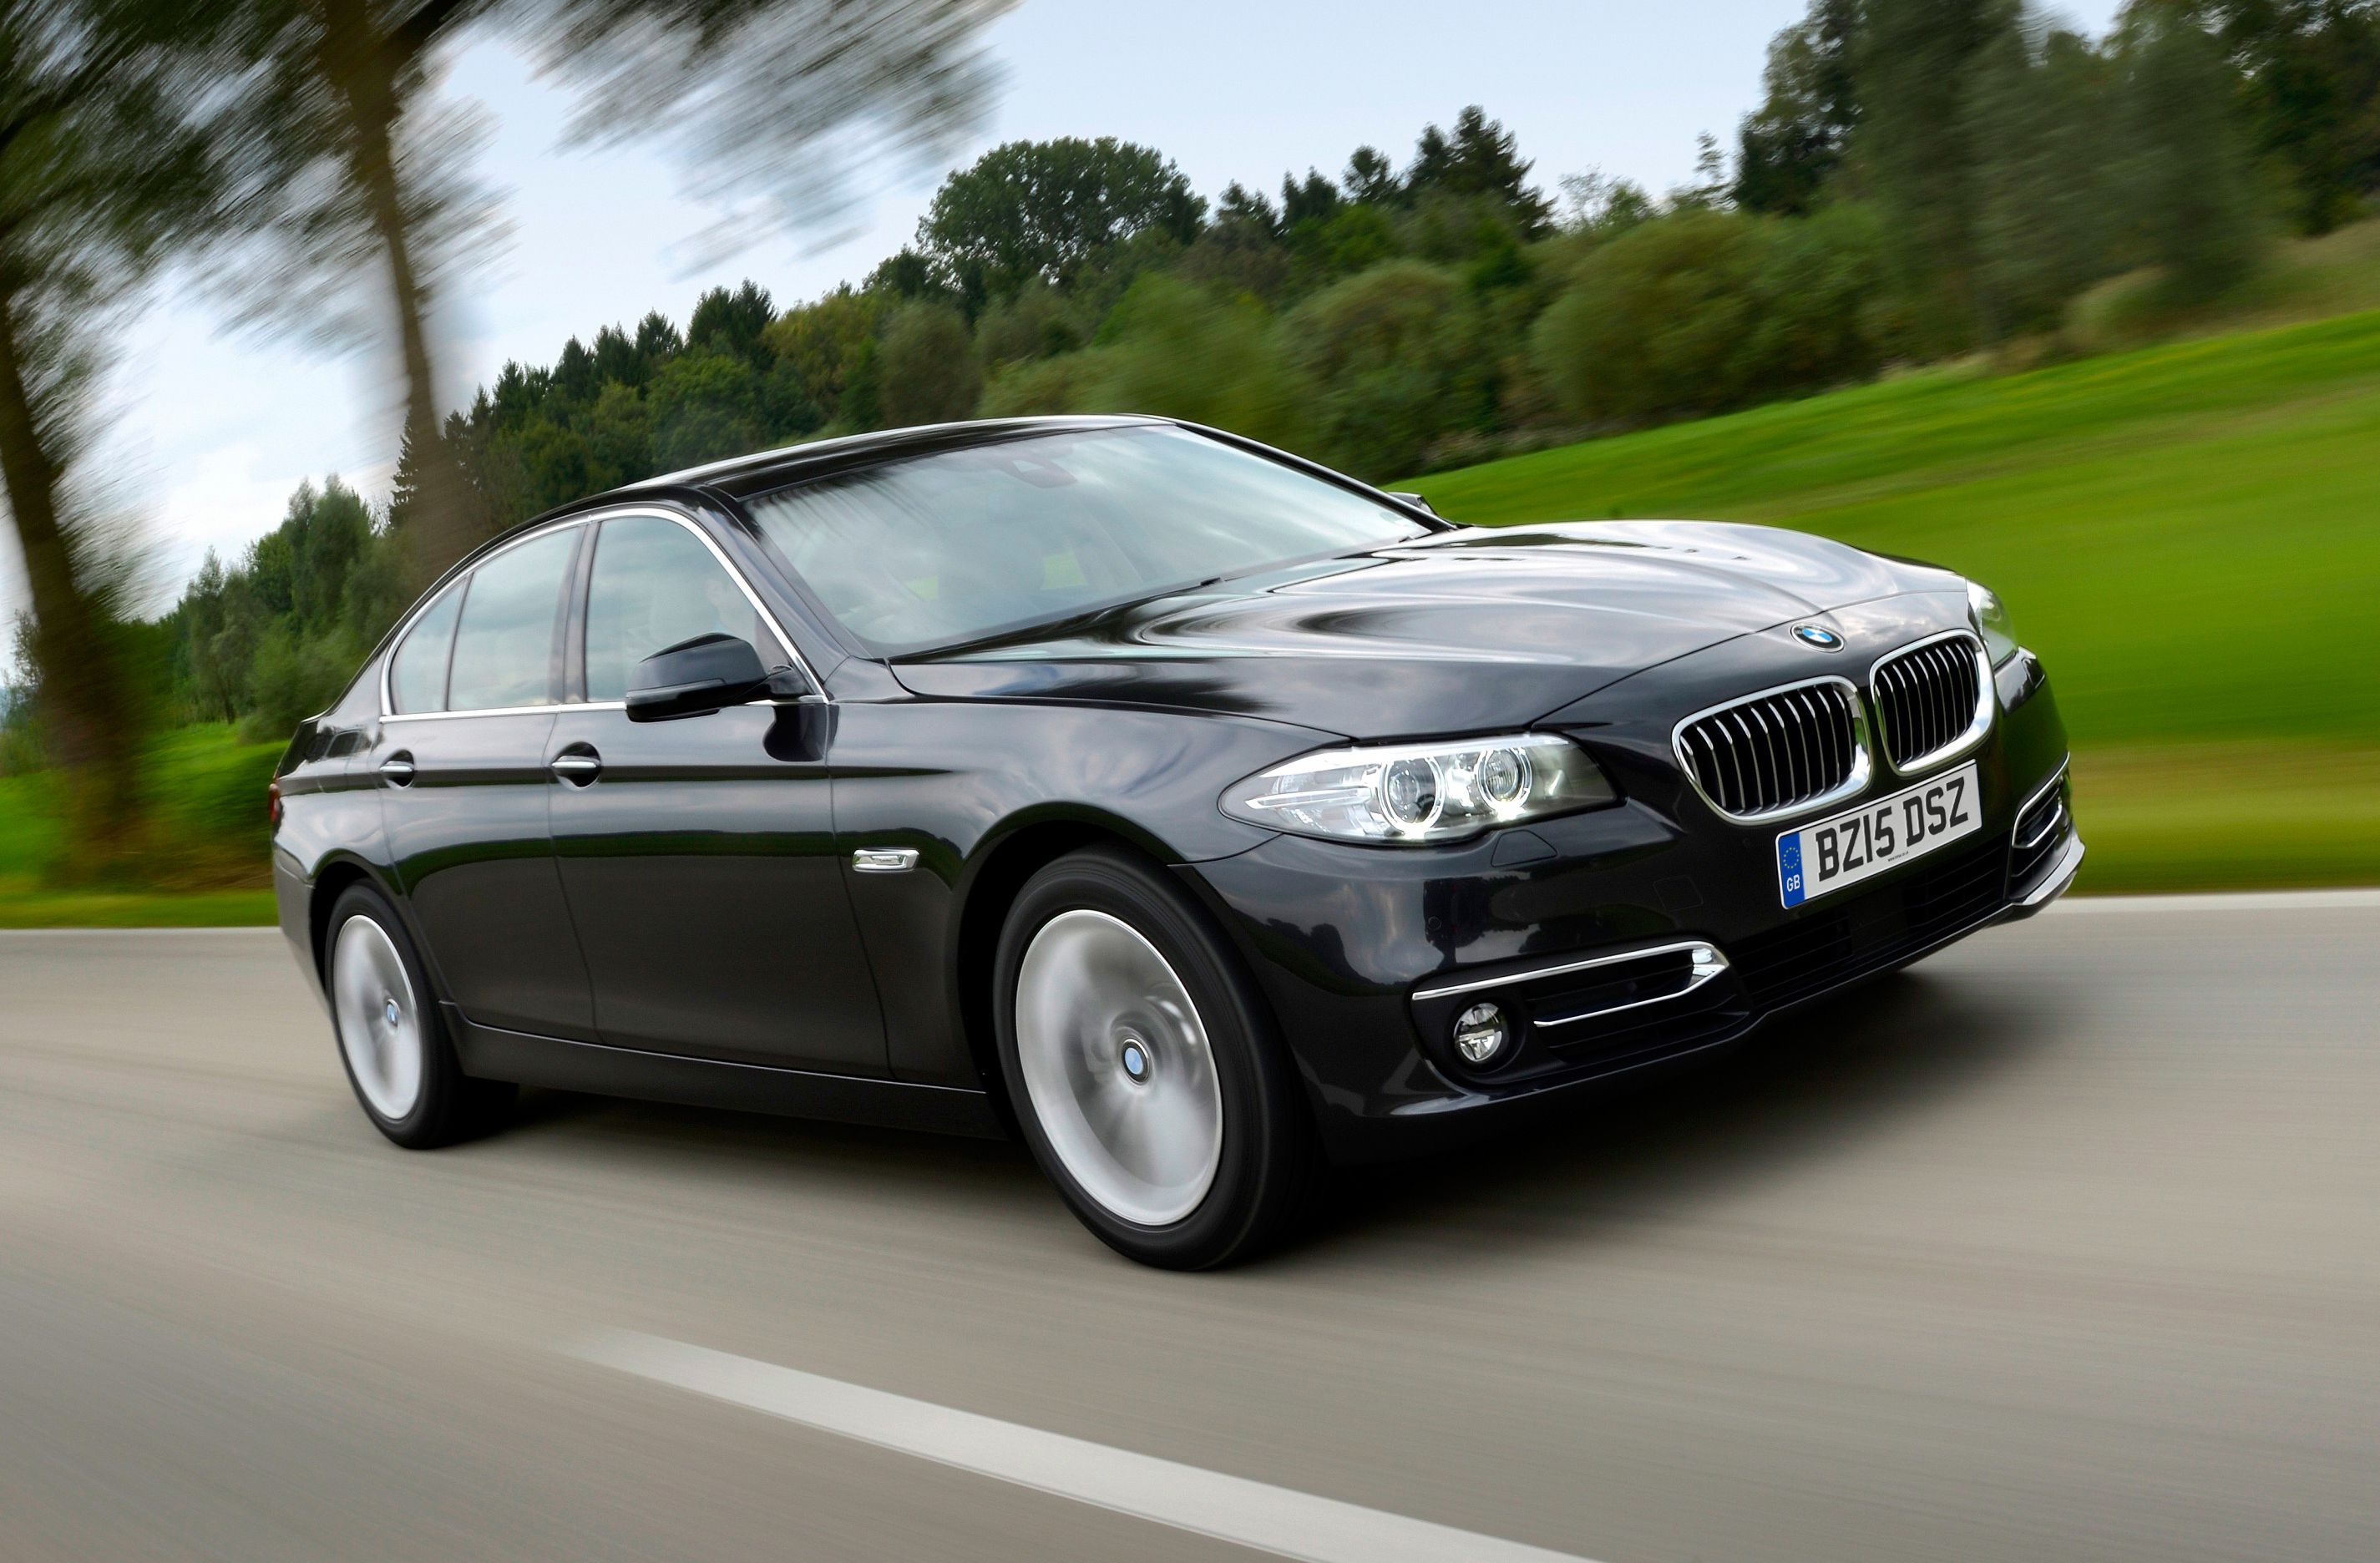 Most Popular Large Premium Car: BMW 5 Series